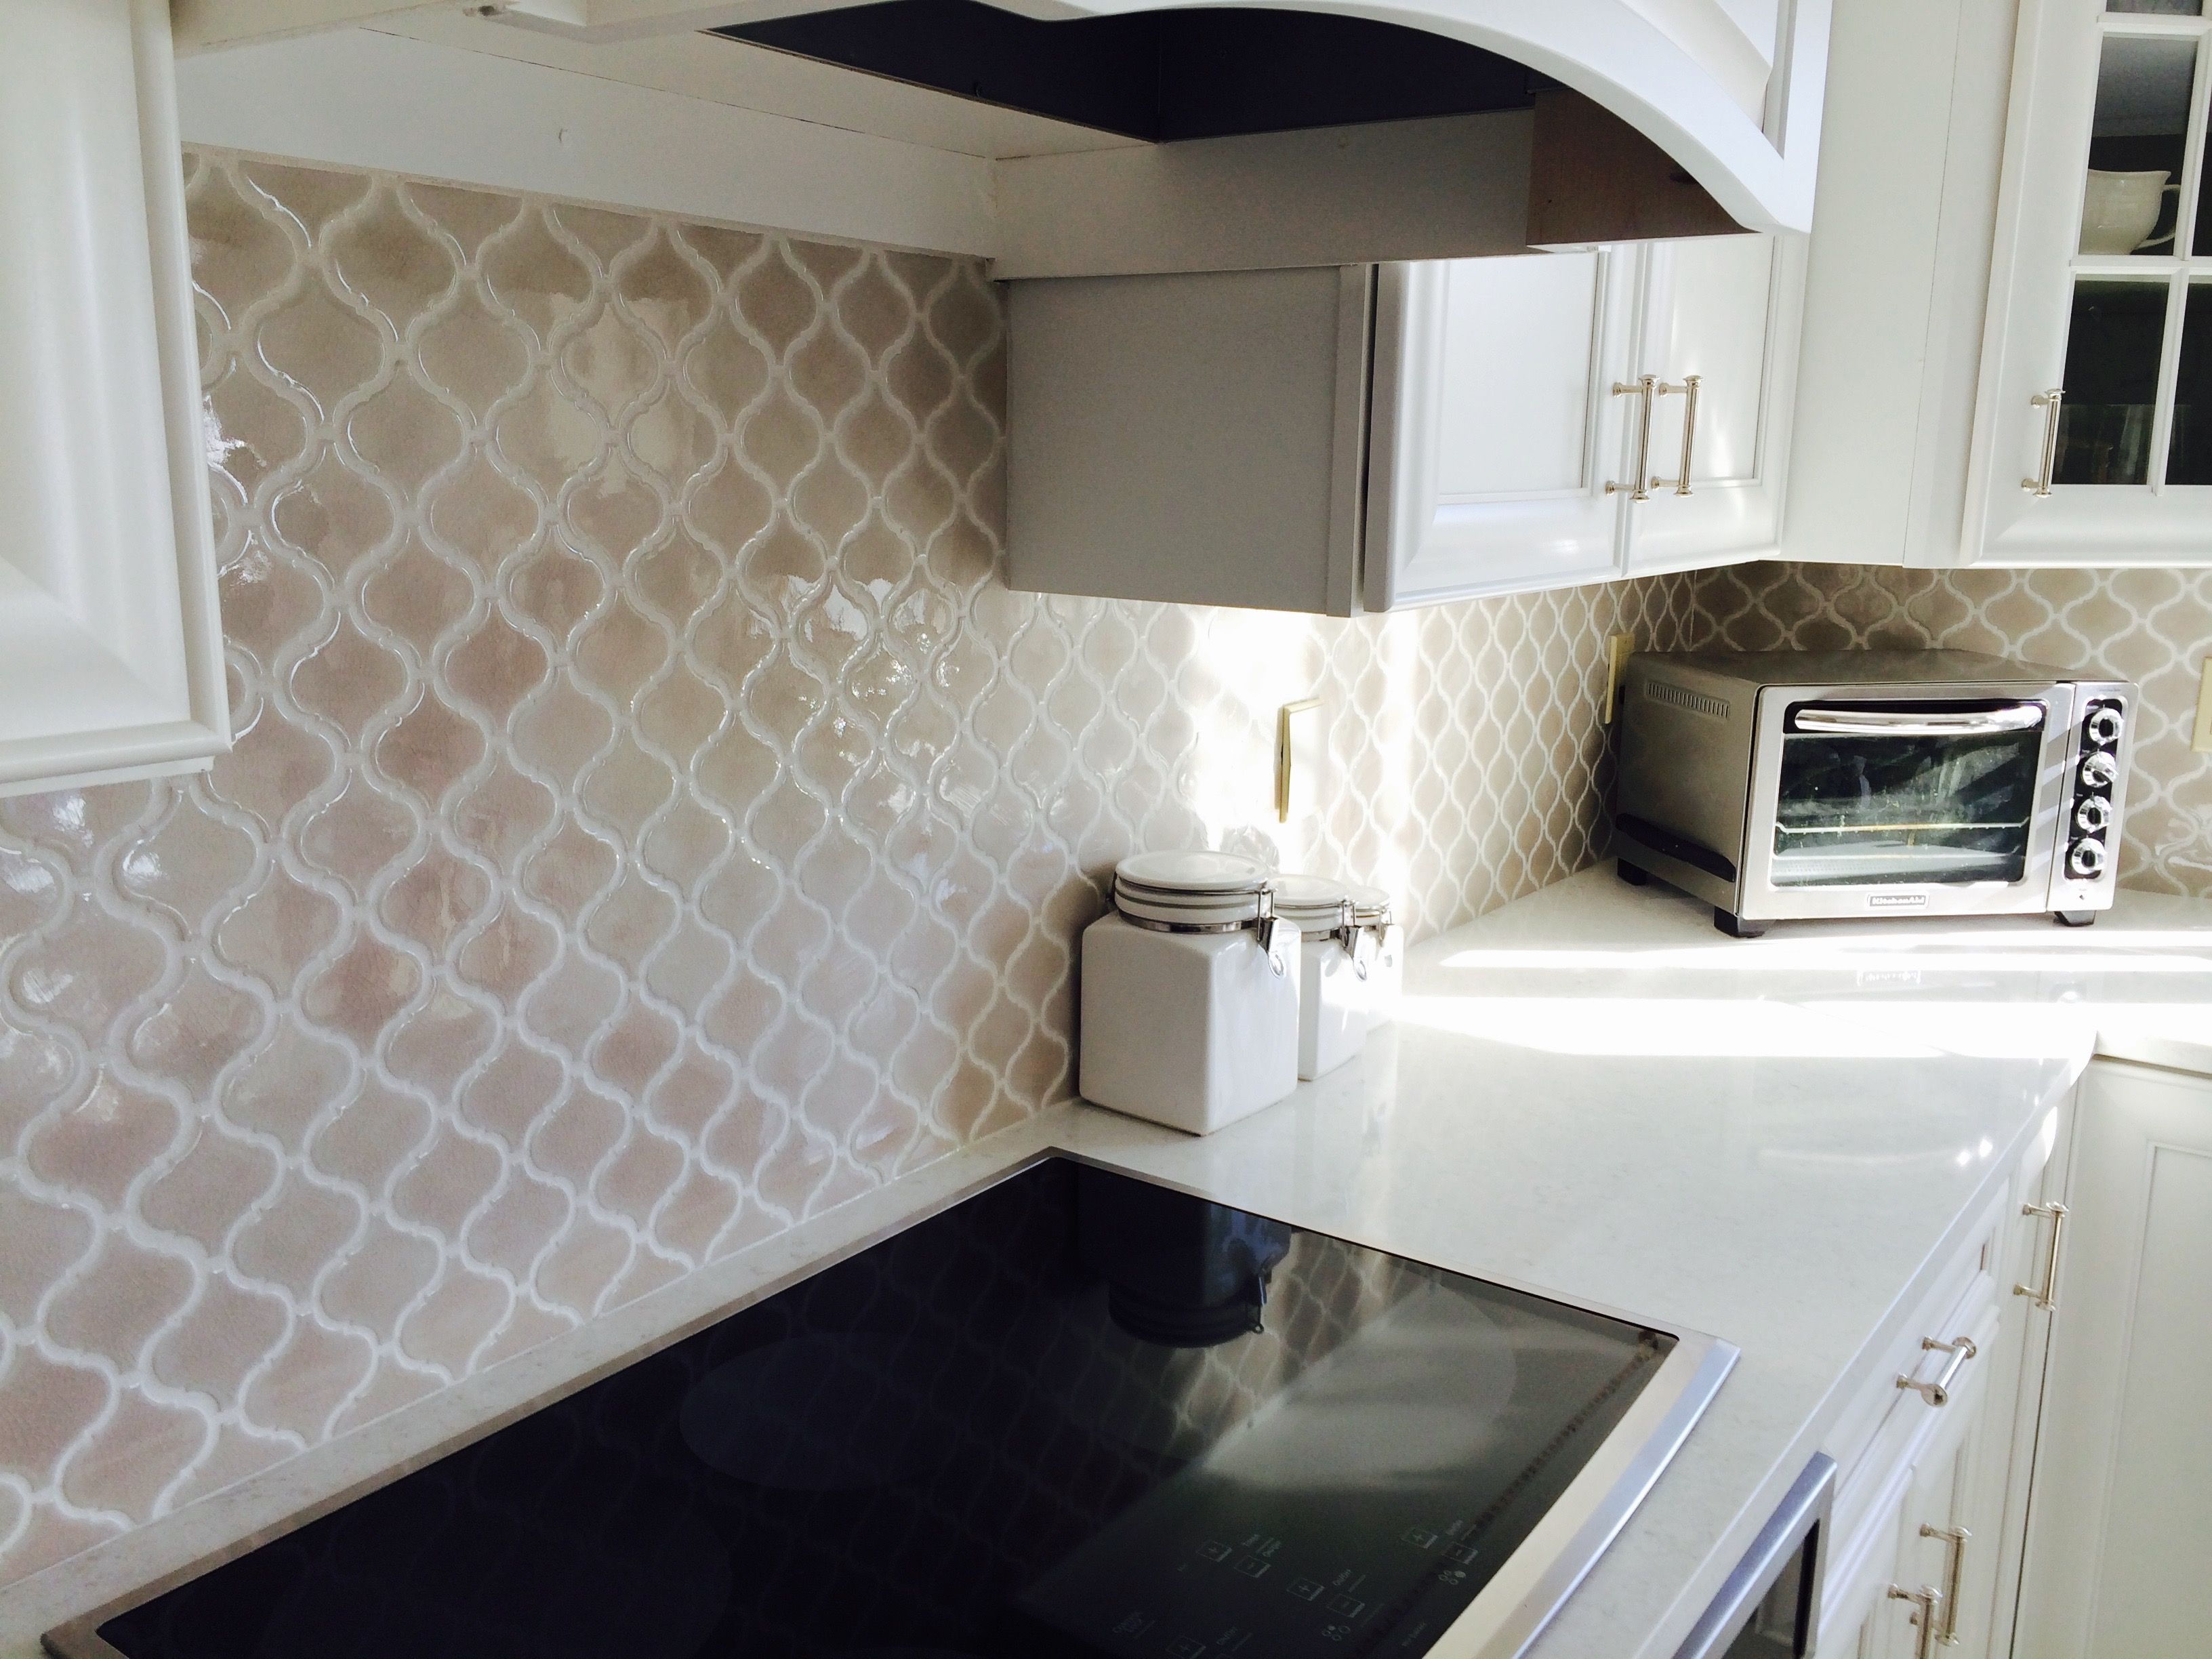 Fog Arabesque Backsplash Tile From Home Depot Design By Linda Lee